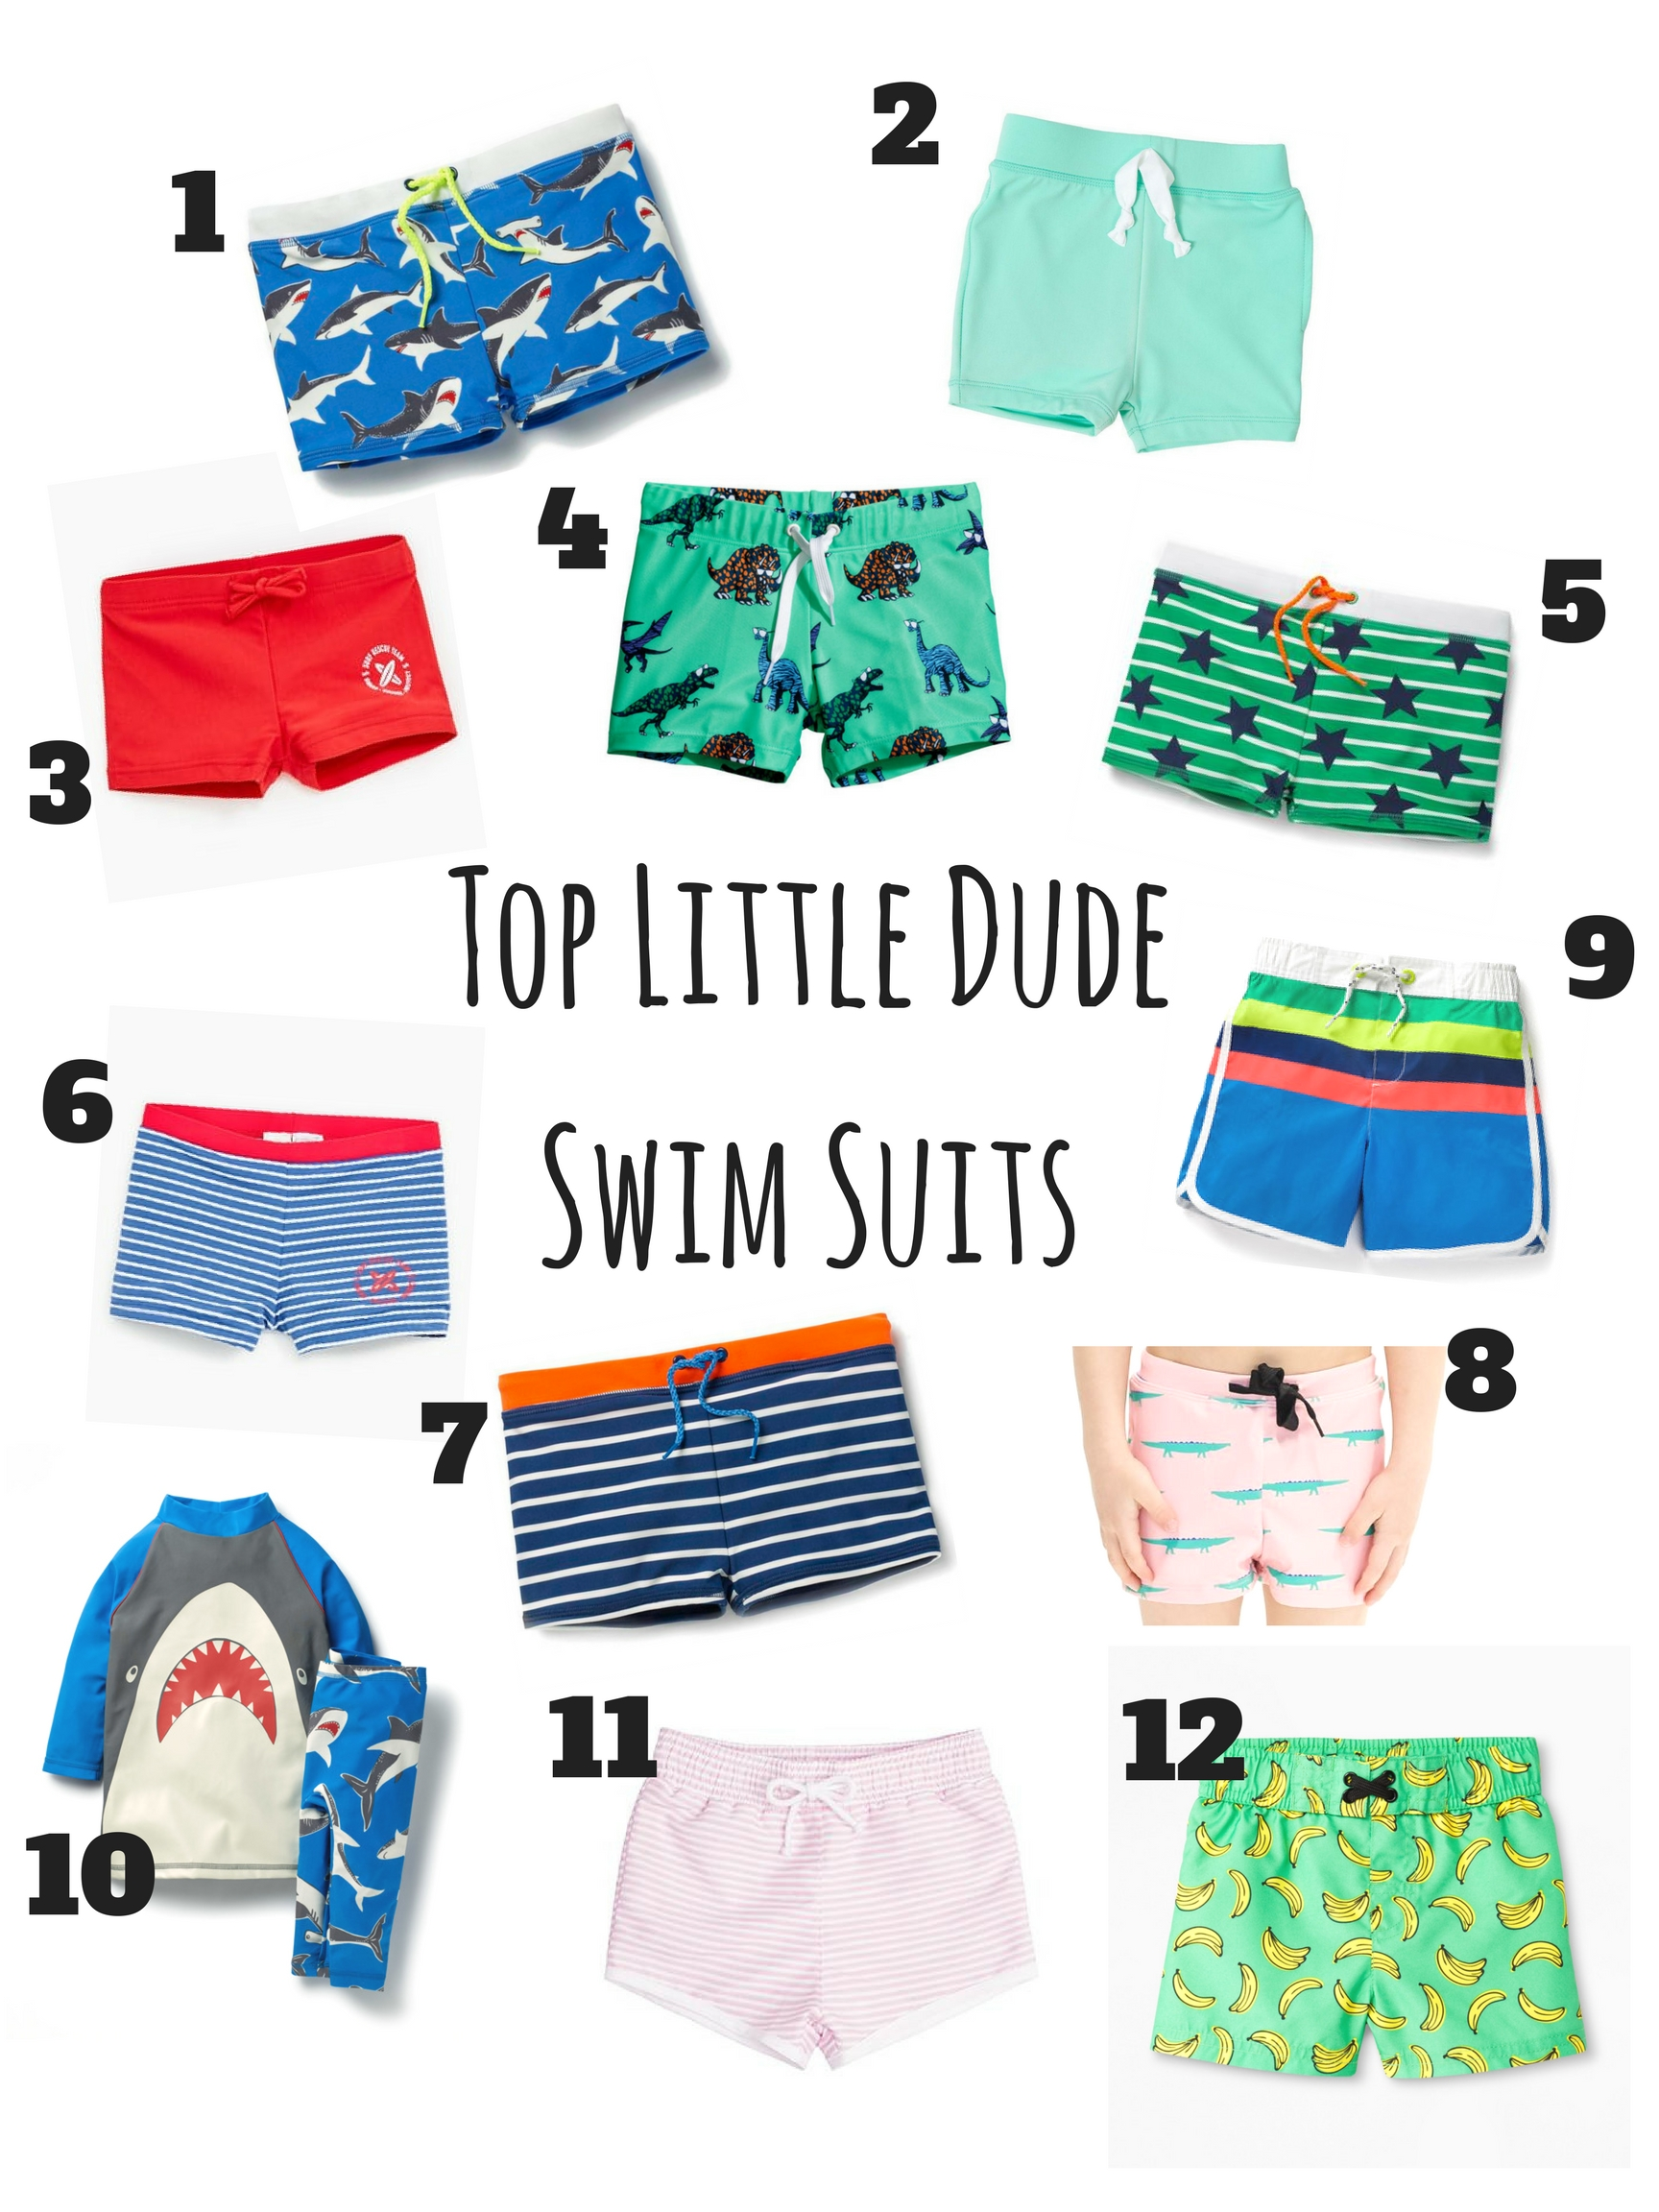 Top Swim Suits for Little Boys